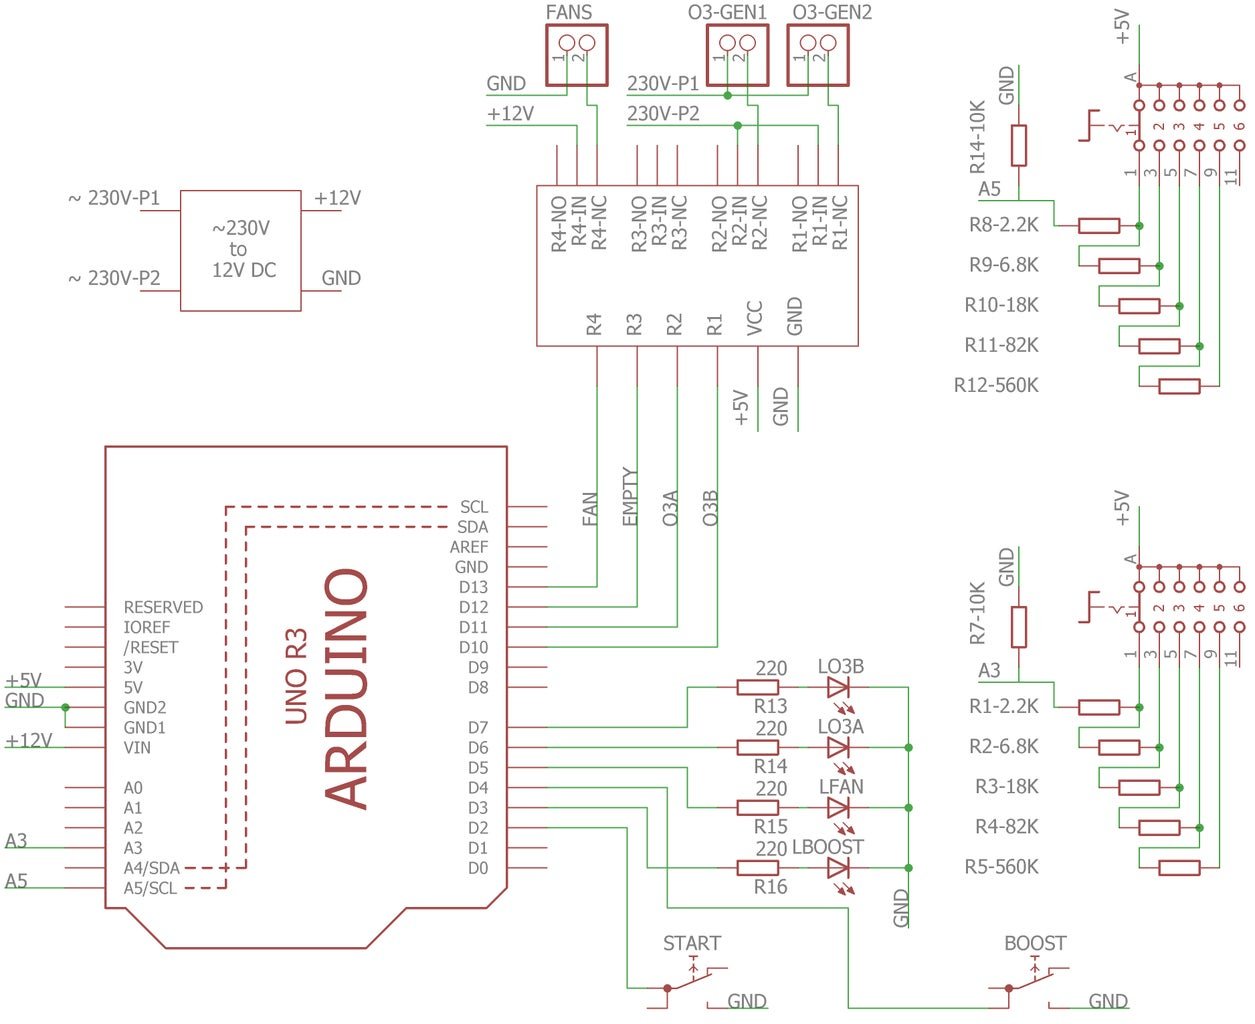 Electrical Layout and Code